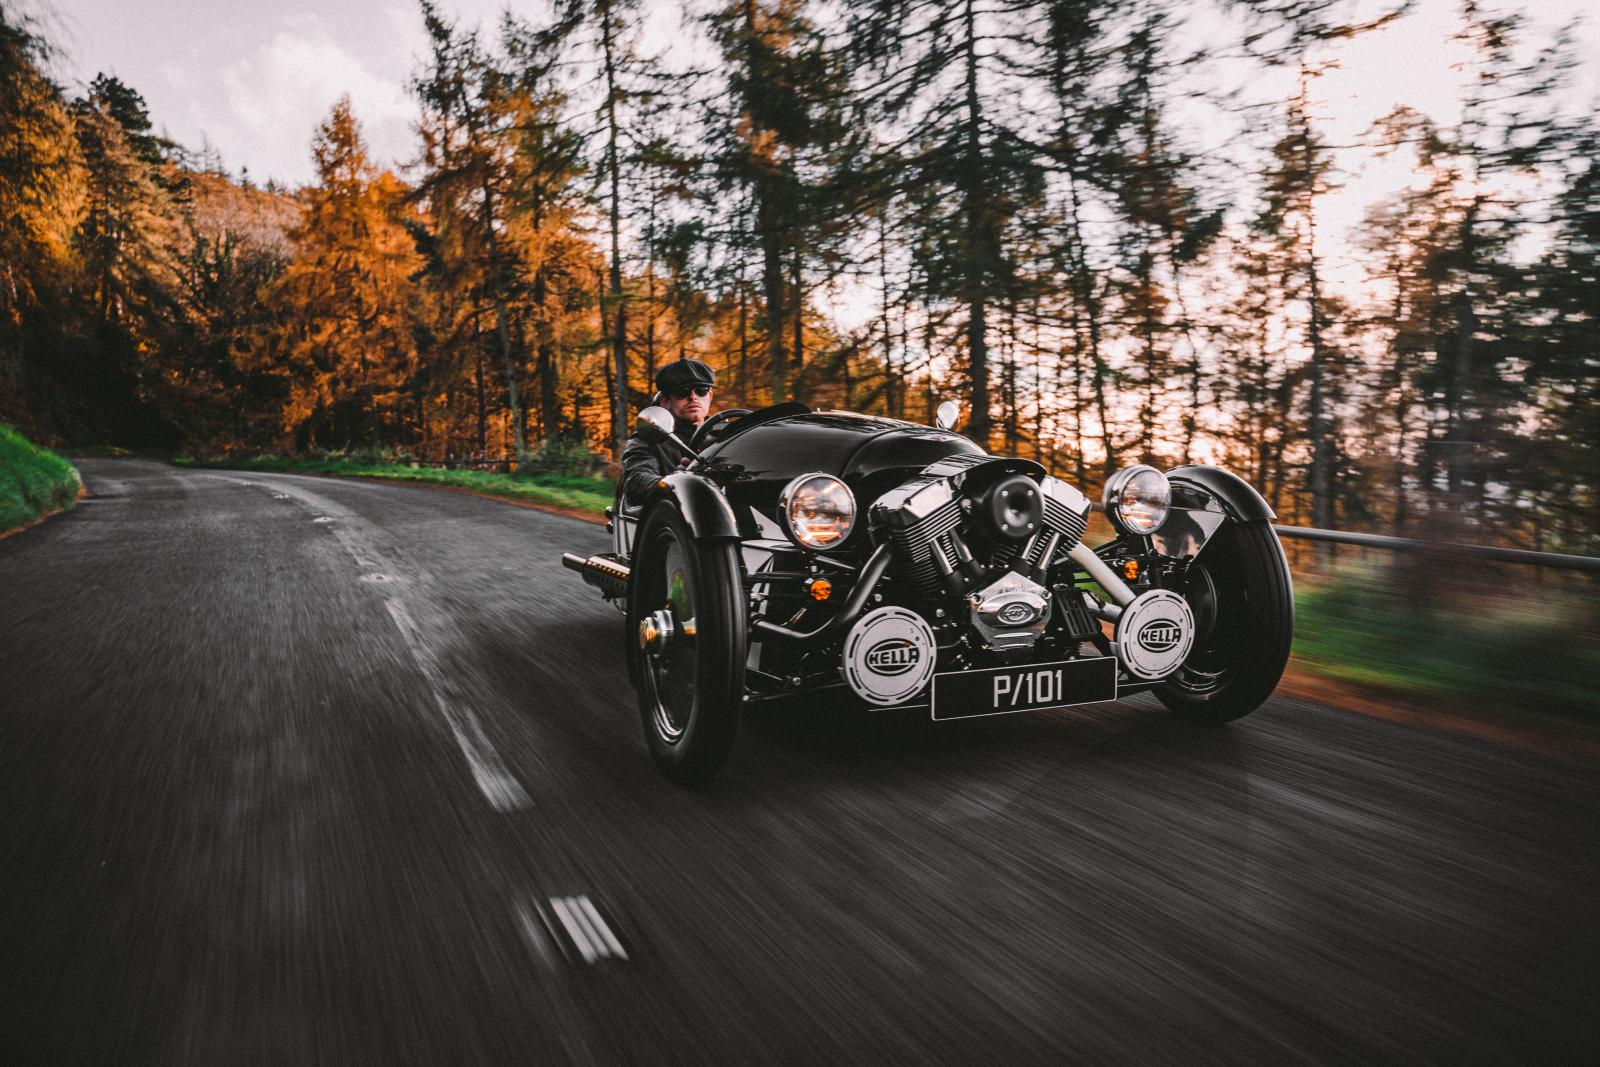 morgan-3-wheeler-edition-p101-6